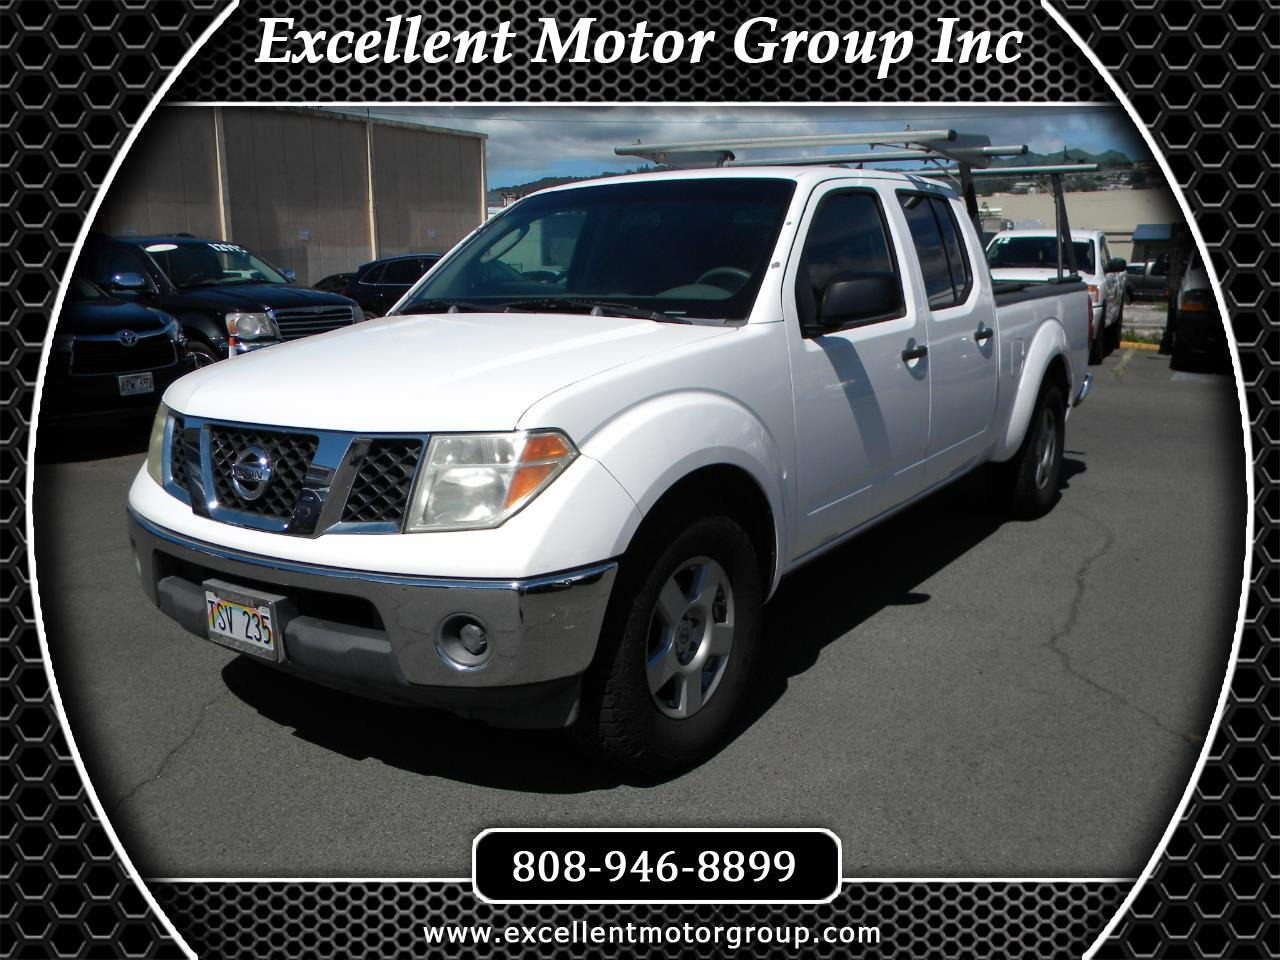 2007 Nissan Frontier SE Crew Cab Long Bed 2WD